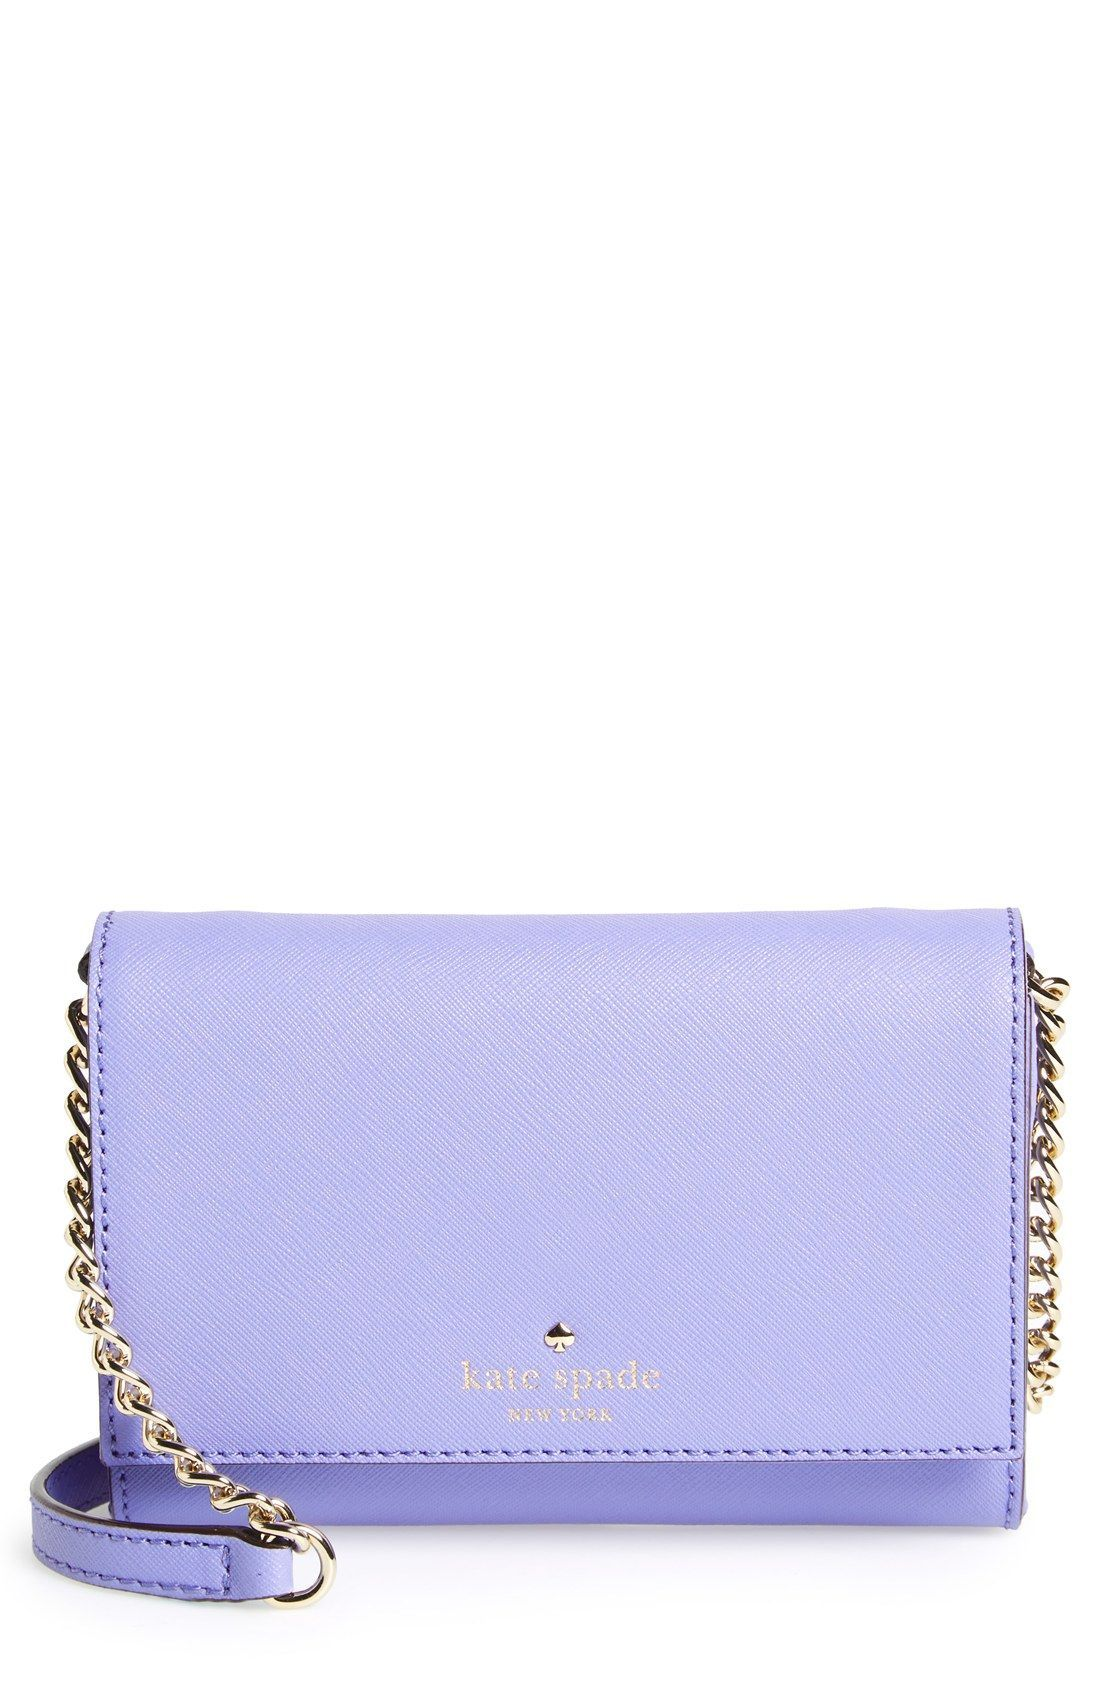 This compact Kate Spade crossbody in purple gives off a fun and chic ... 11d16399ee7fb